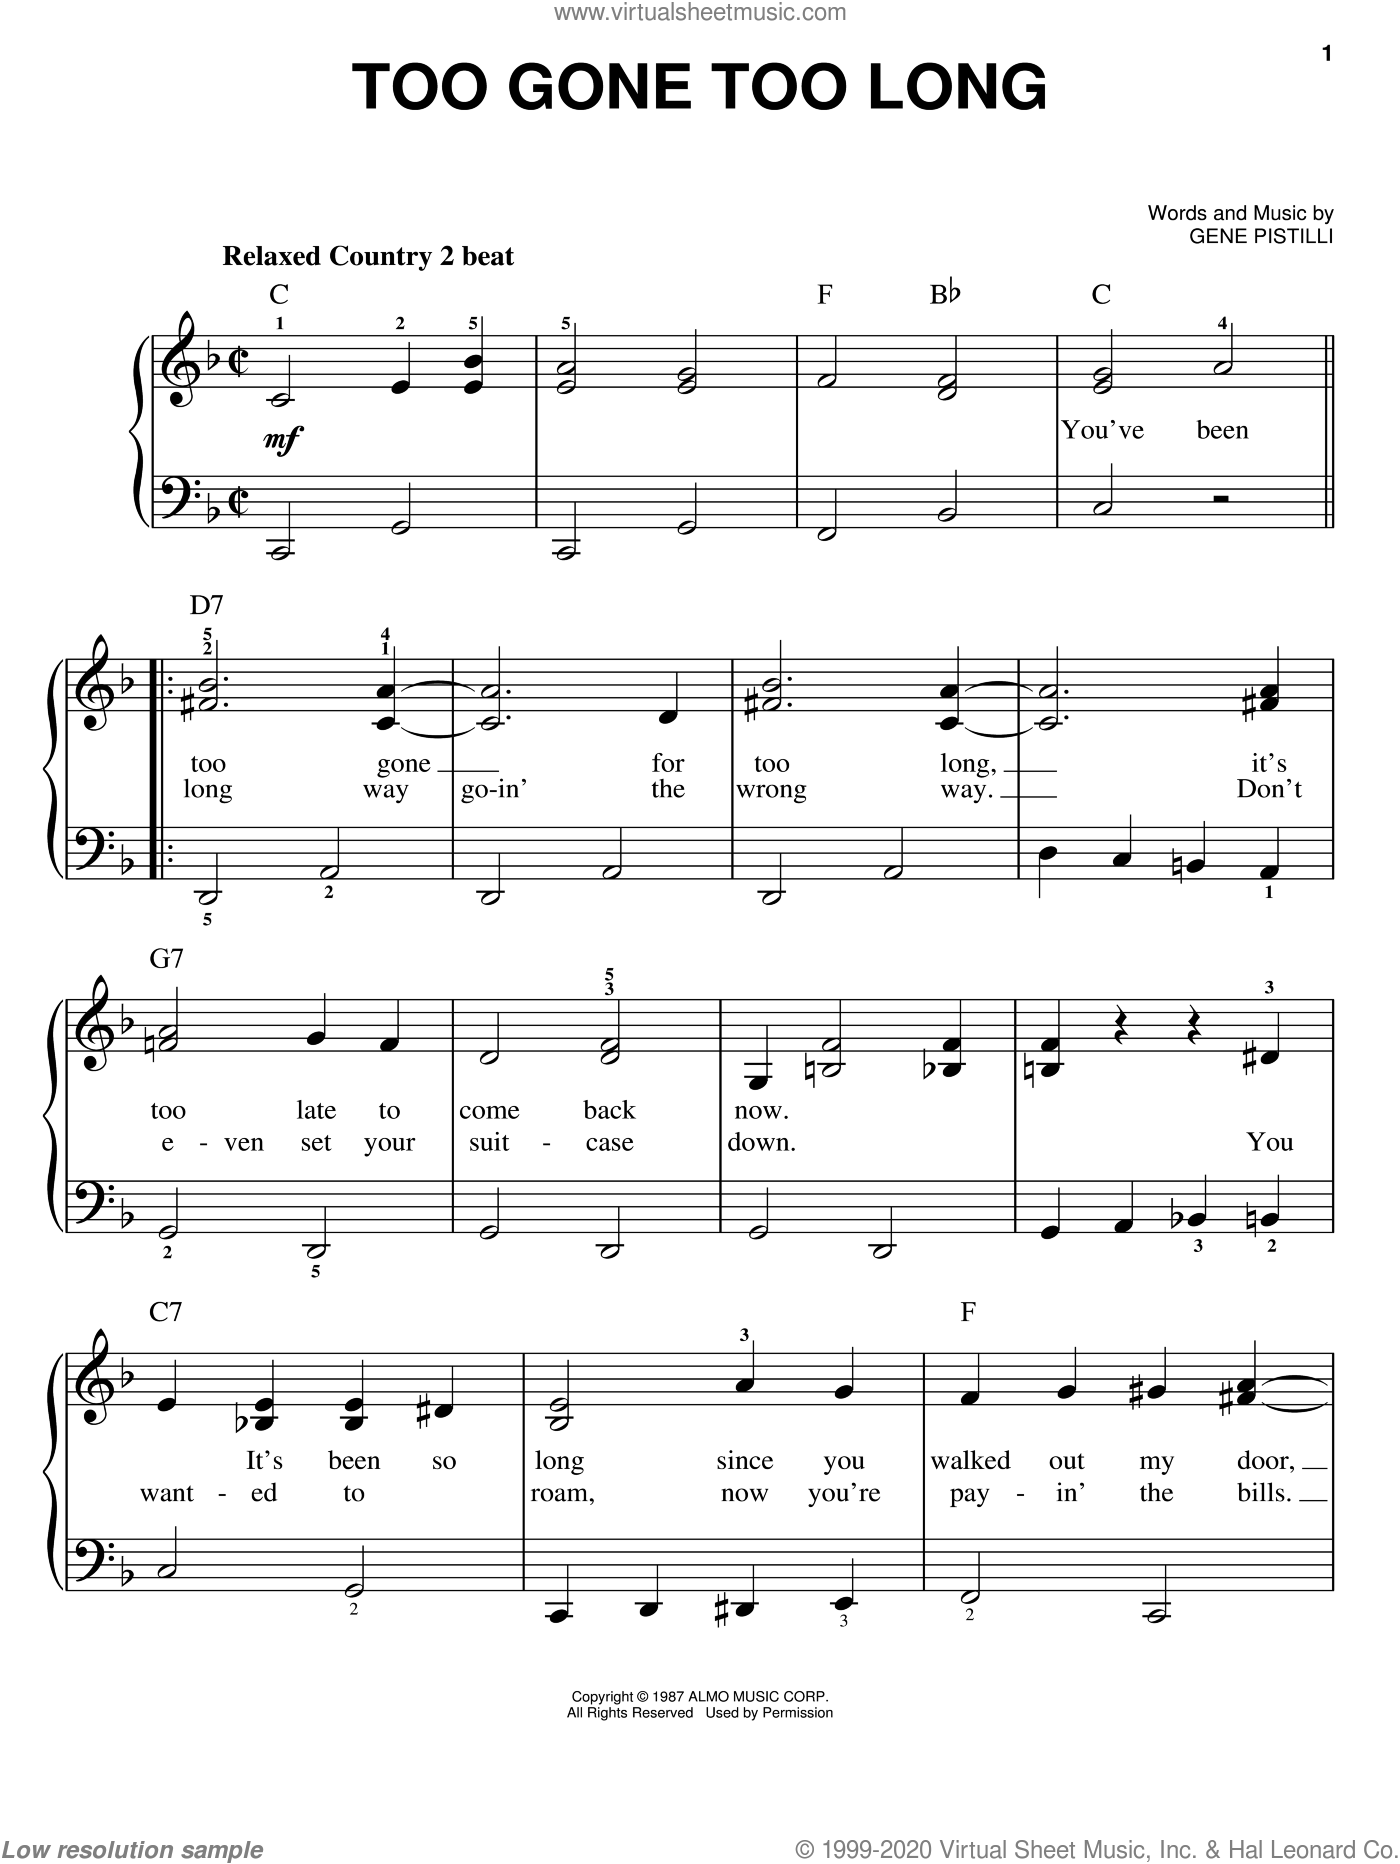 Too Gone Too Long sheet music for piano solo by Randy Travis, easy piano. Score Image Preview.